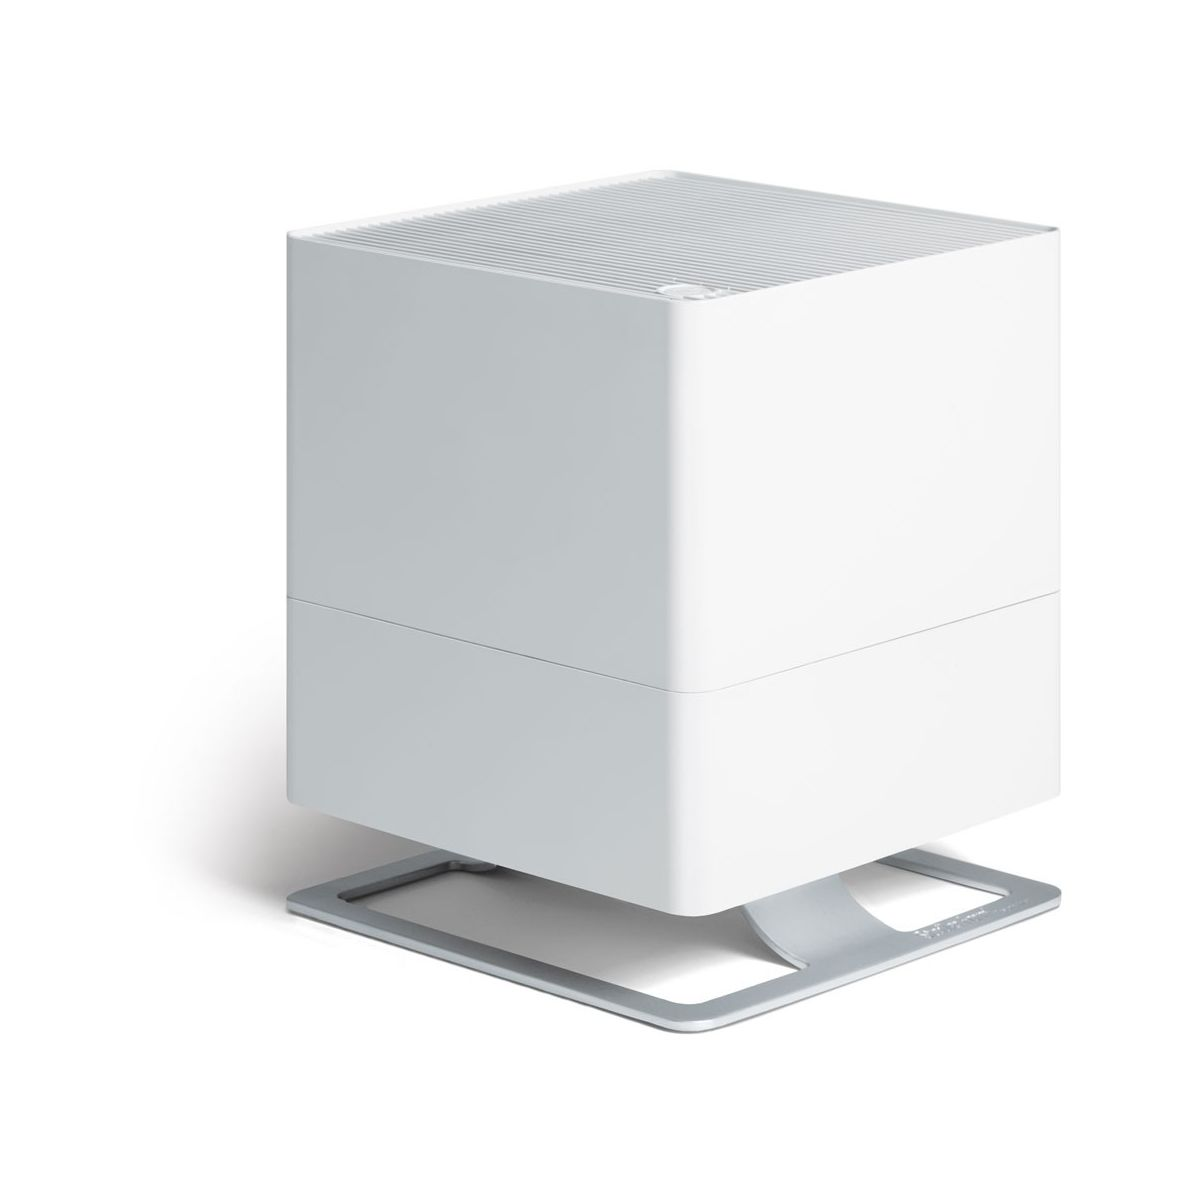 Humidificateur stadler form oskar little blanc - 20% de remise imm�diate avec le code : priv20 (photo)